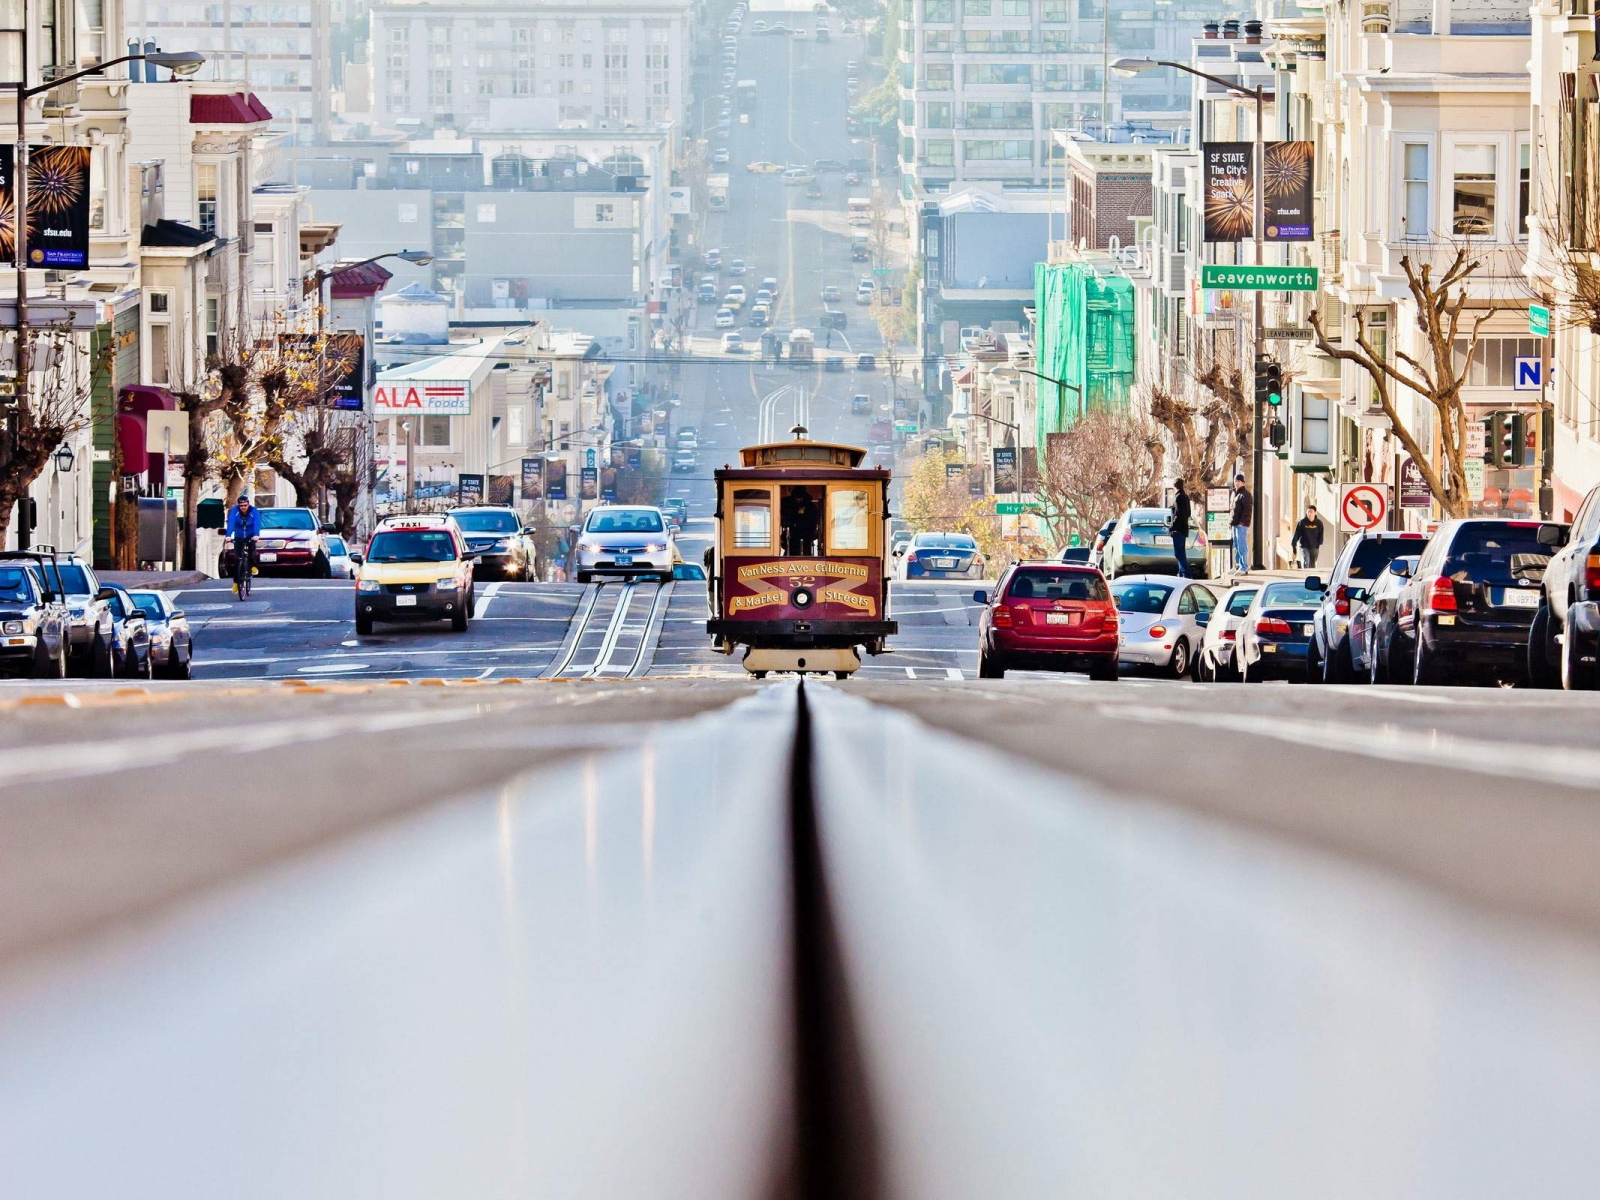 Tram in San Francisco